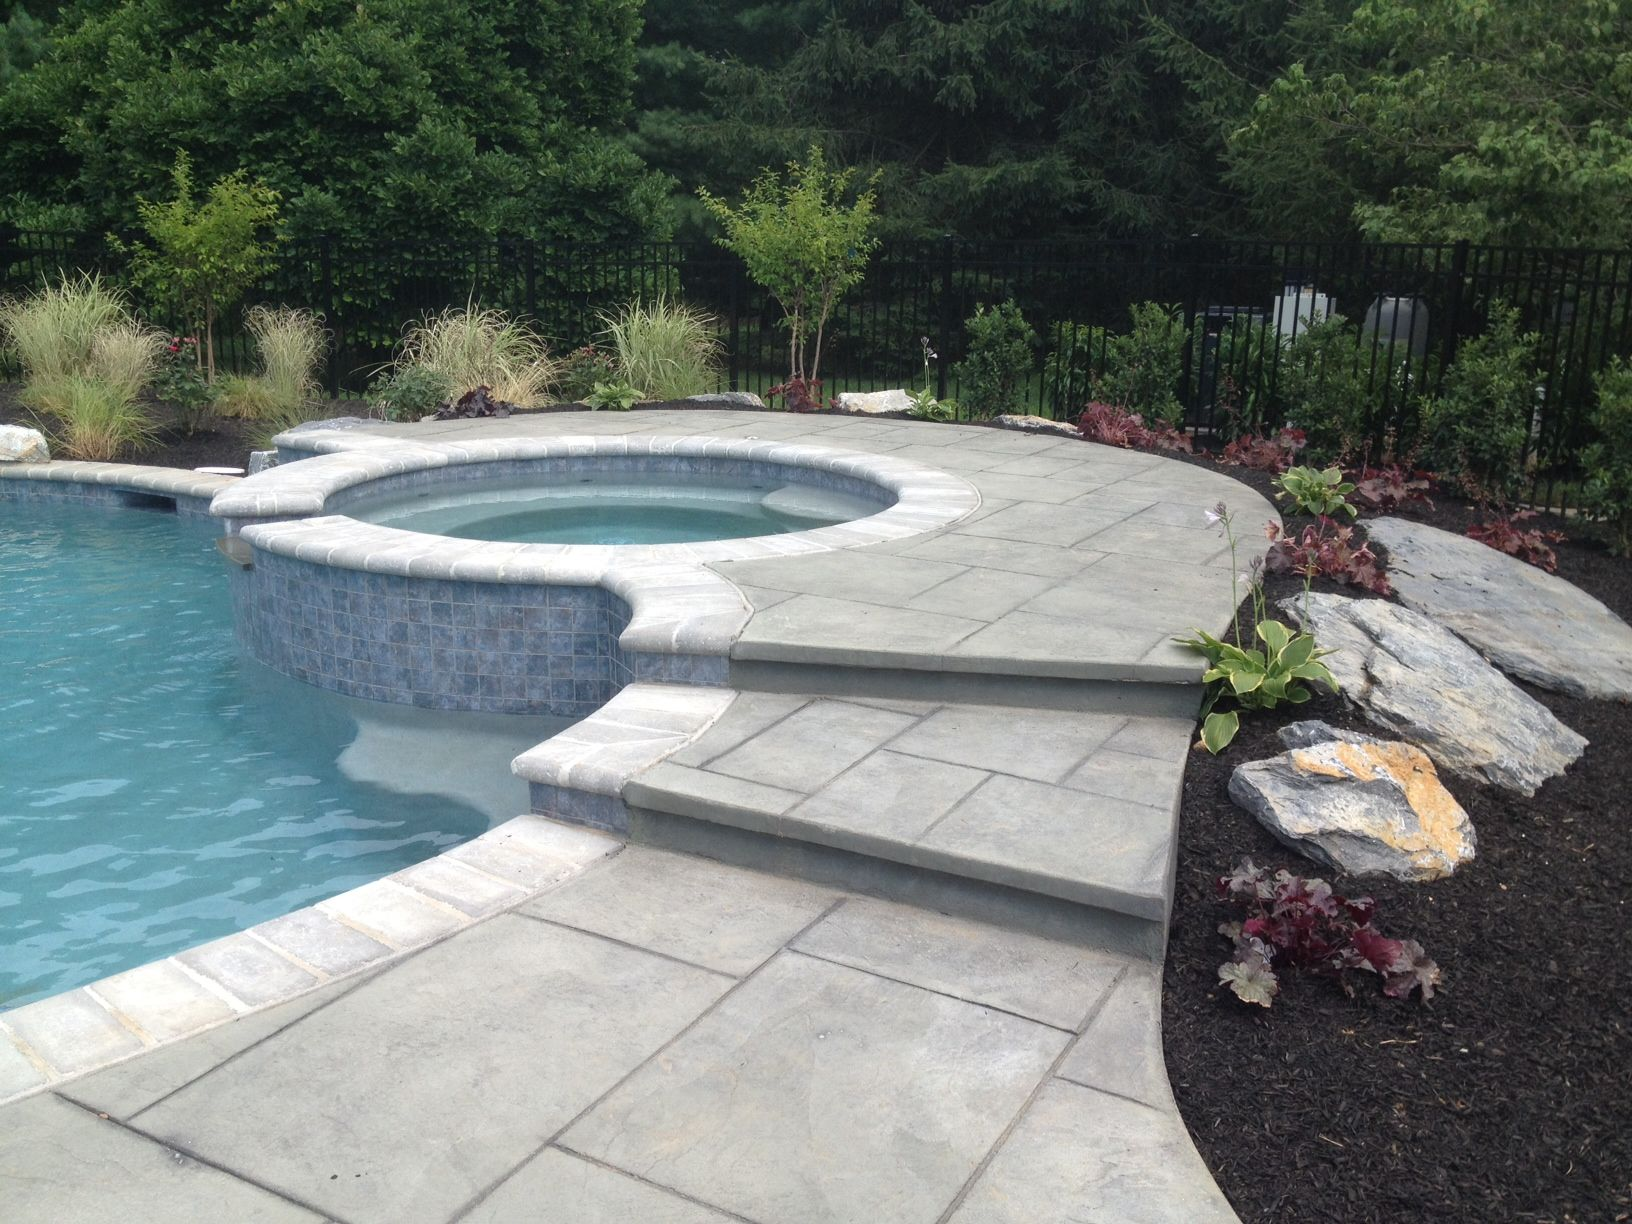 landscaping company pool landscaping concrete pool concrete design stamped concrete around pool pool ideas backyard ideas outdoor ideas outdoor fun